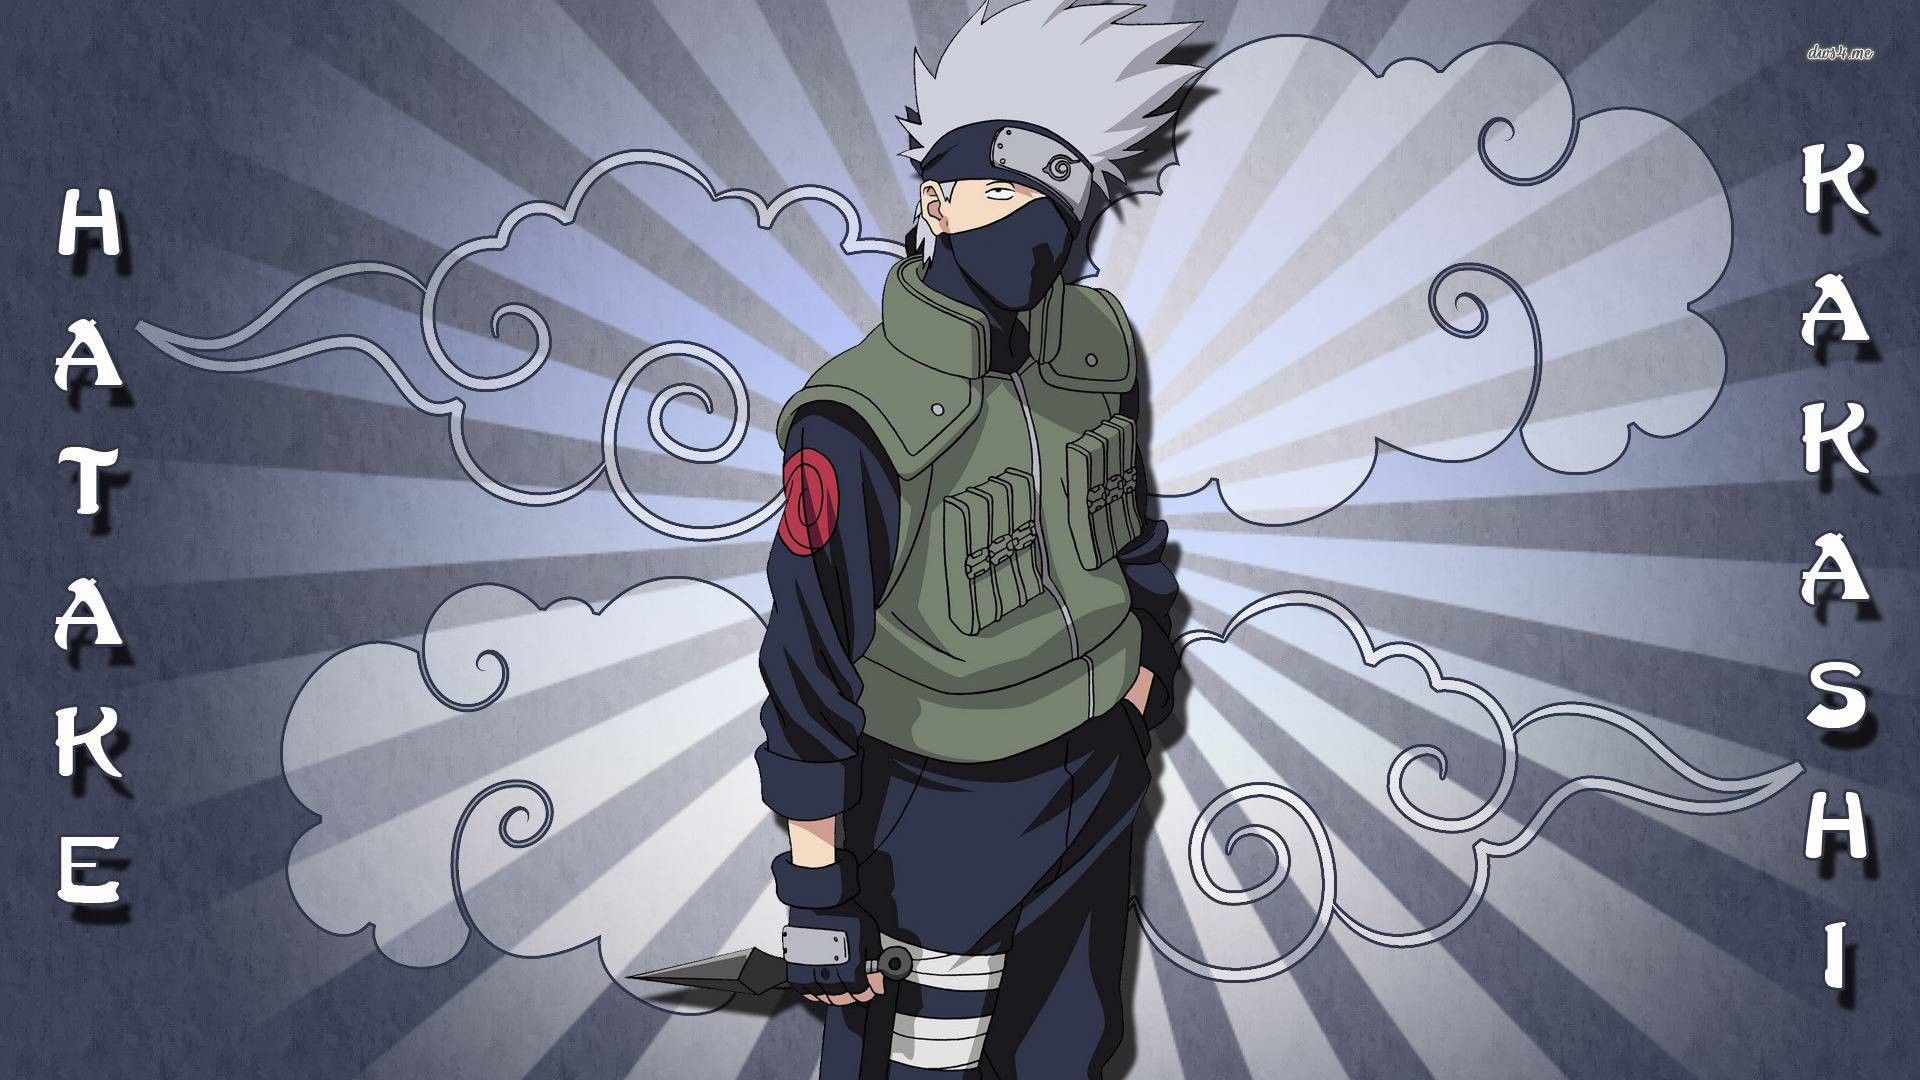 Res 1920x1080 Naruto Kakashi Wallpapers For Android Naruto Wallpaper Kakashi 1080p Anime Wallpaper